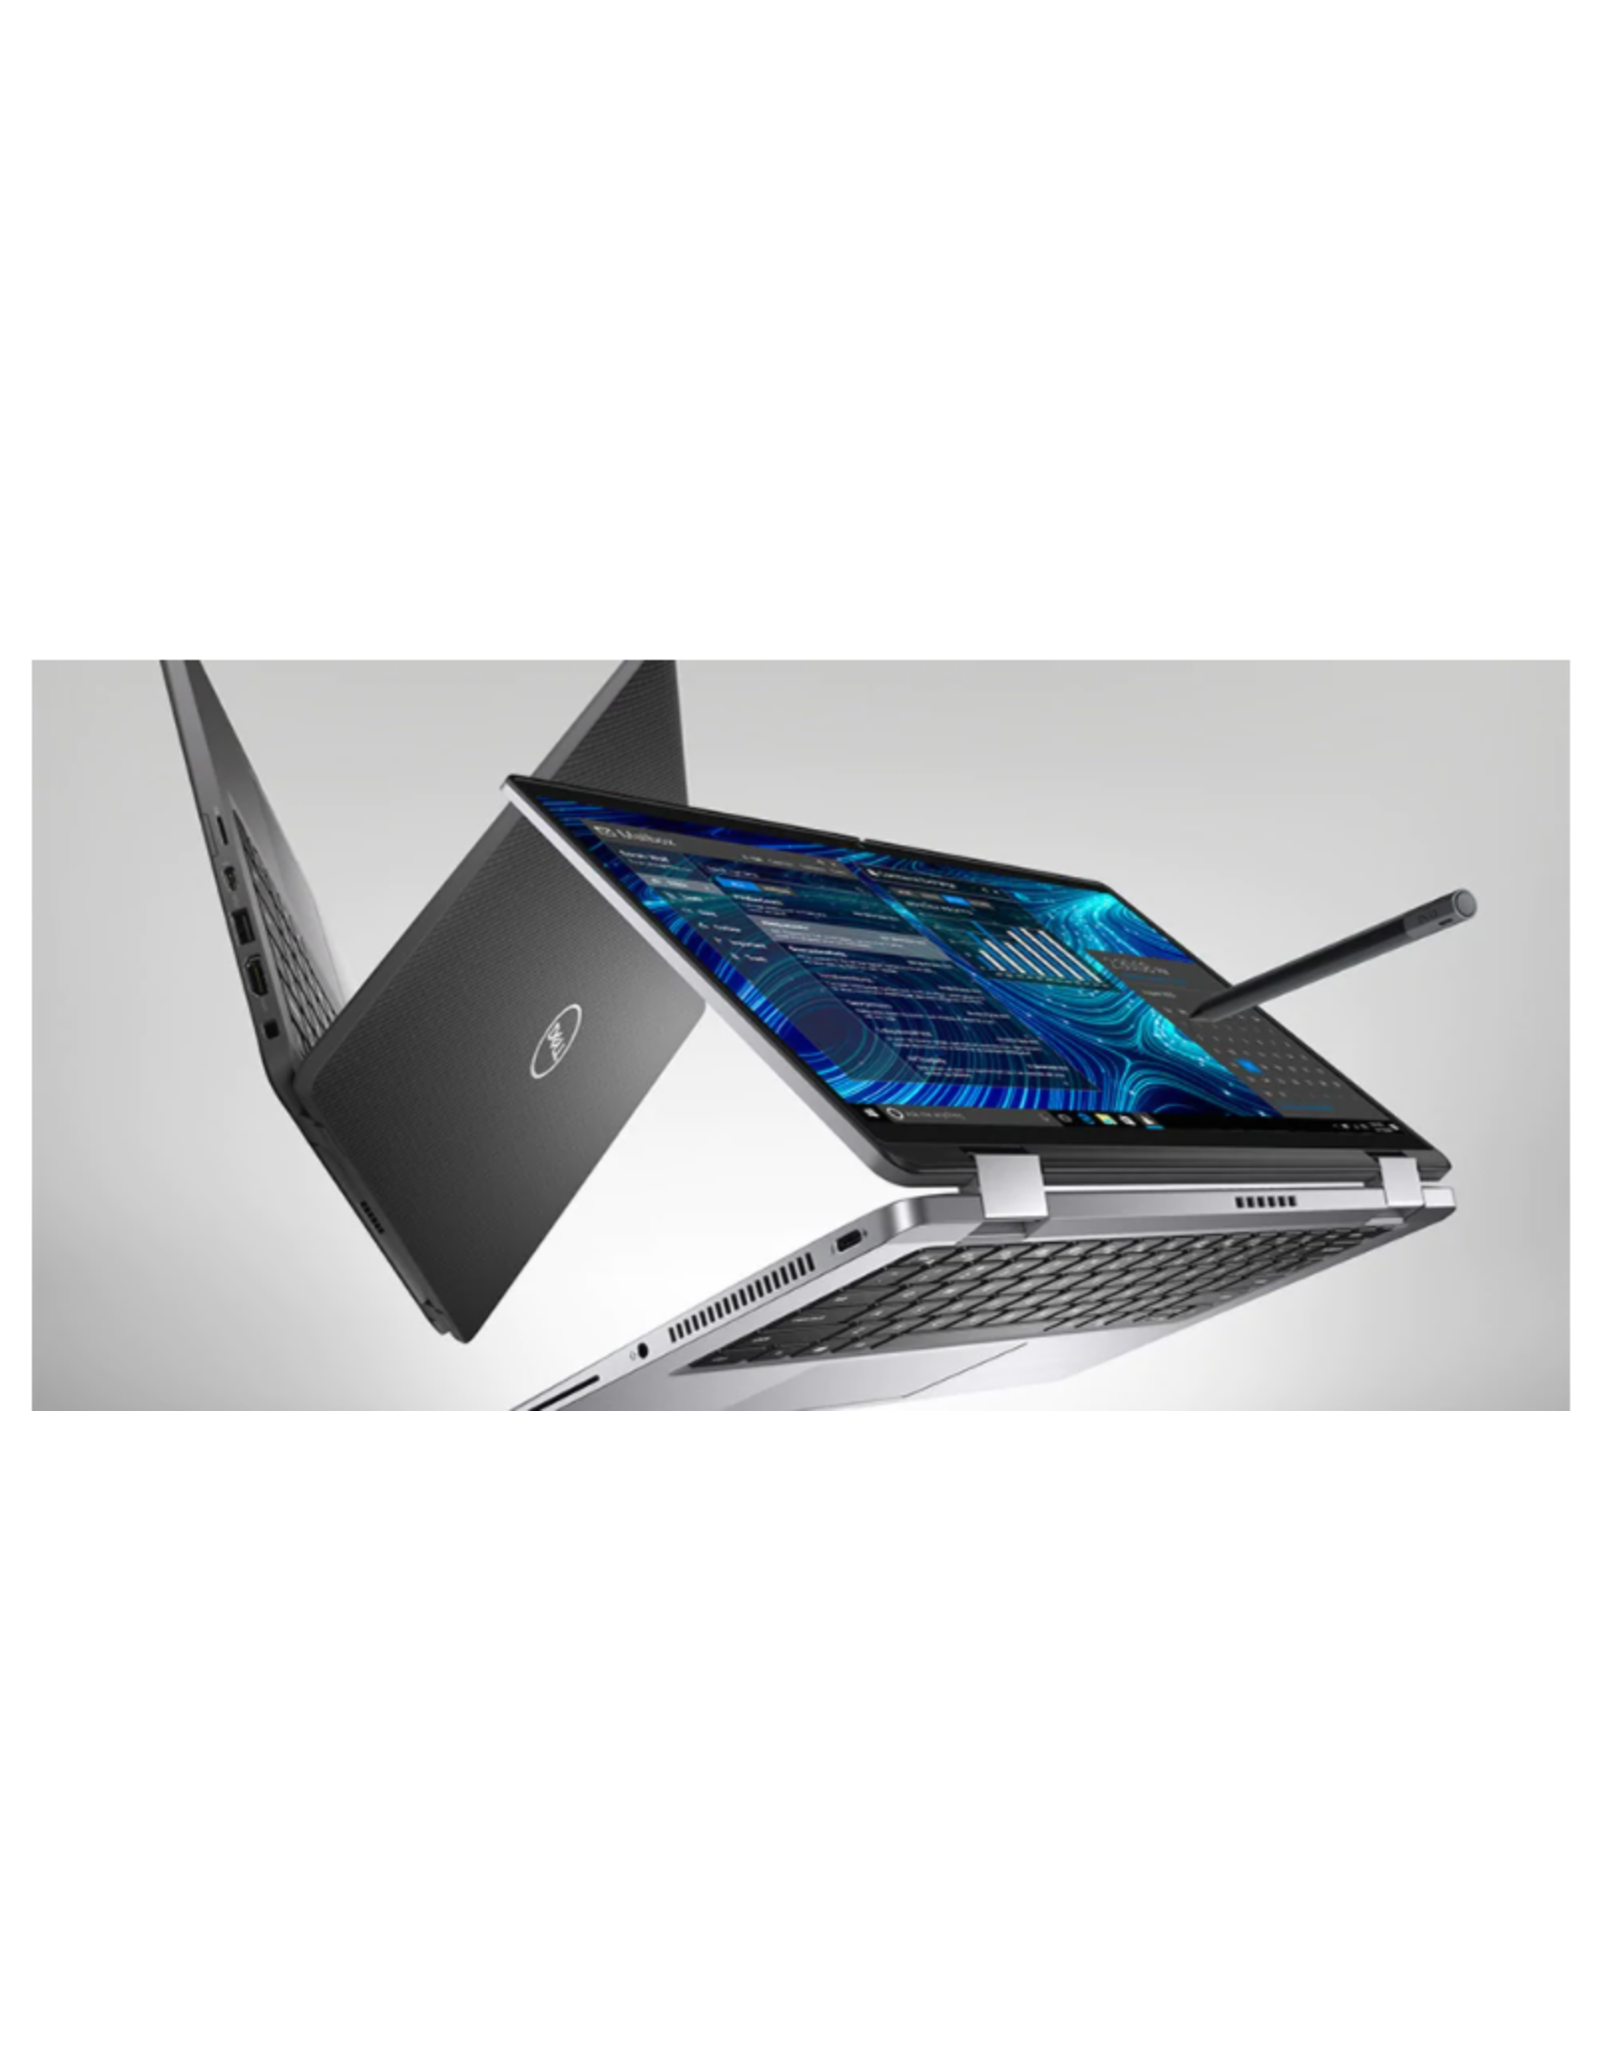 "DELL DELL LATITUDE 7420 W/ ACTIVE PEN: 11 GEN INTEL CORE i7-1165G7 (4 CORE 2.8GHz TP 4.7GHz), WINDOWS 10 PRO, 16GB RAM, 512GB SSD, 2-N-1 14"" FHD (1920x1080) TOUCH HD IR CAM W MIC & PEN SUPPORT, WIRELESS/BLUETOOTH, w/ DELL ACTIVE PEN (PN579X), 5YRS PRO"